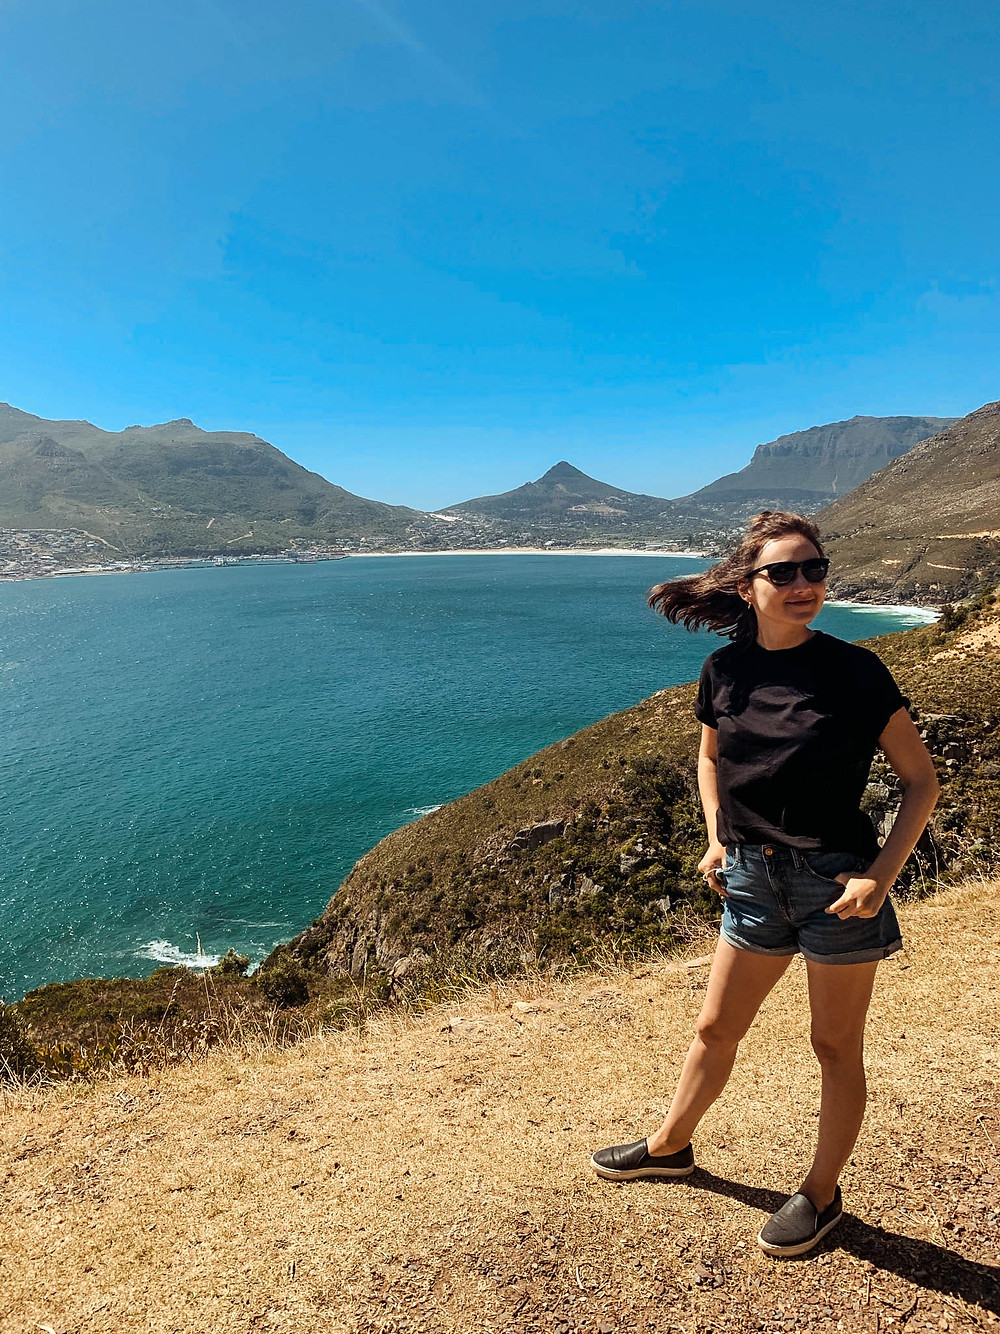 Jenna looking out from Chapman's Peak